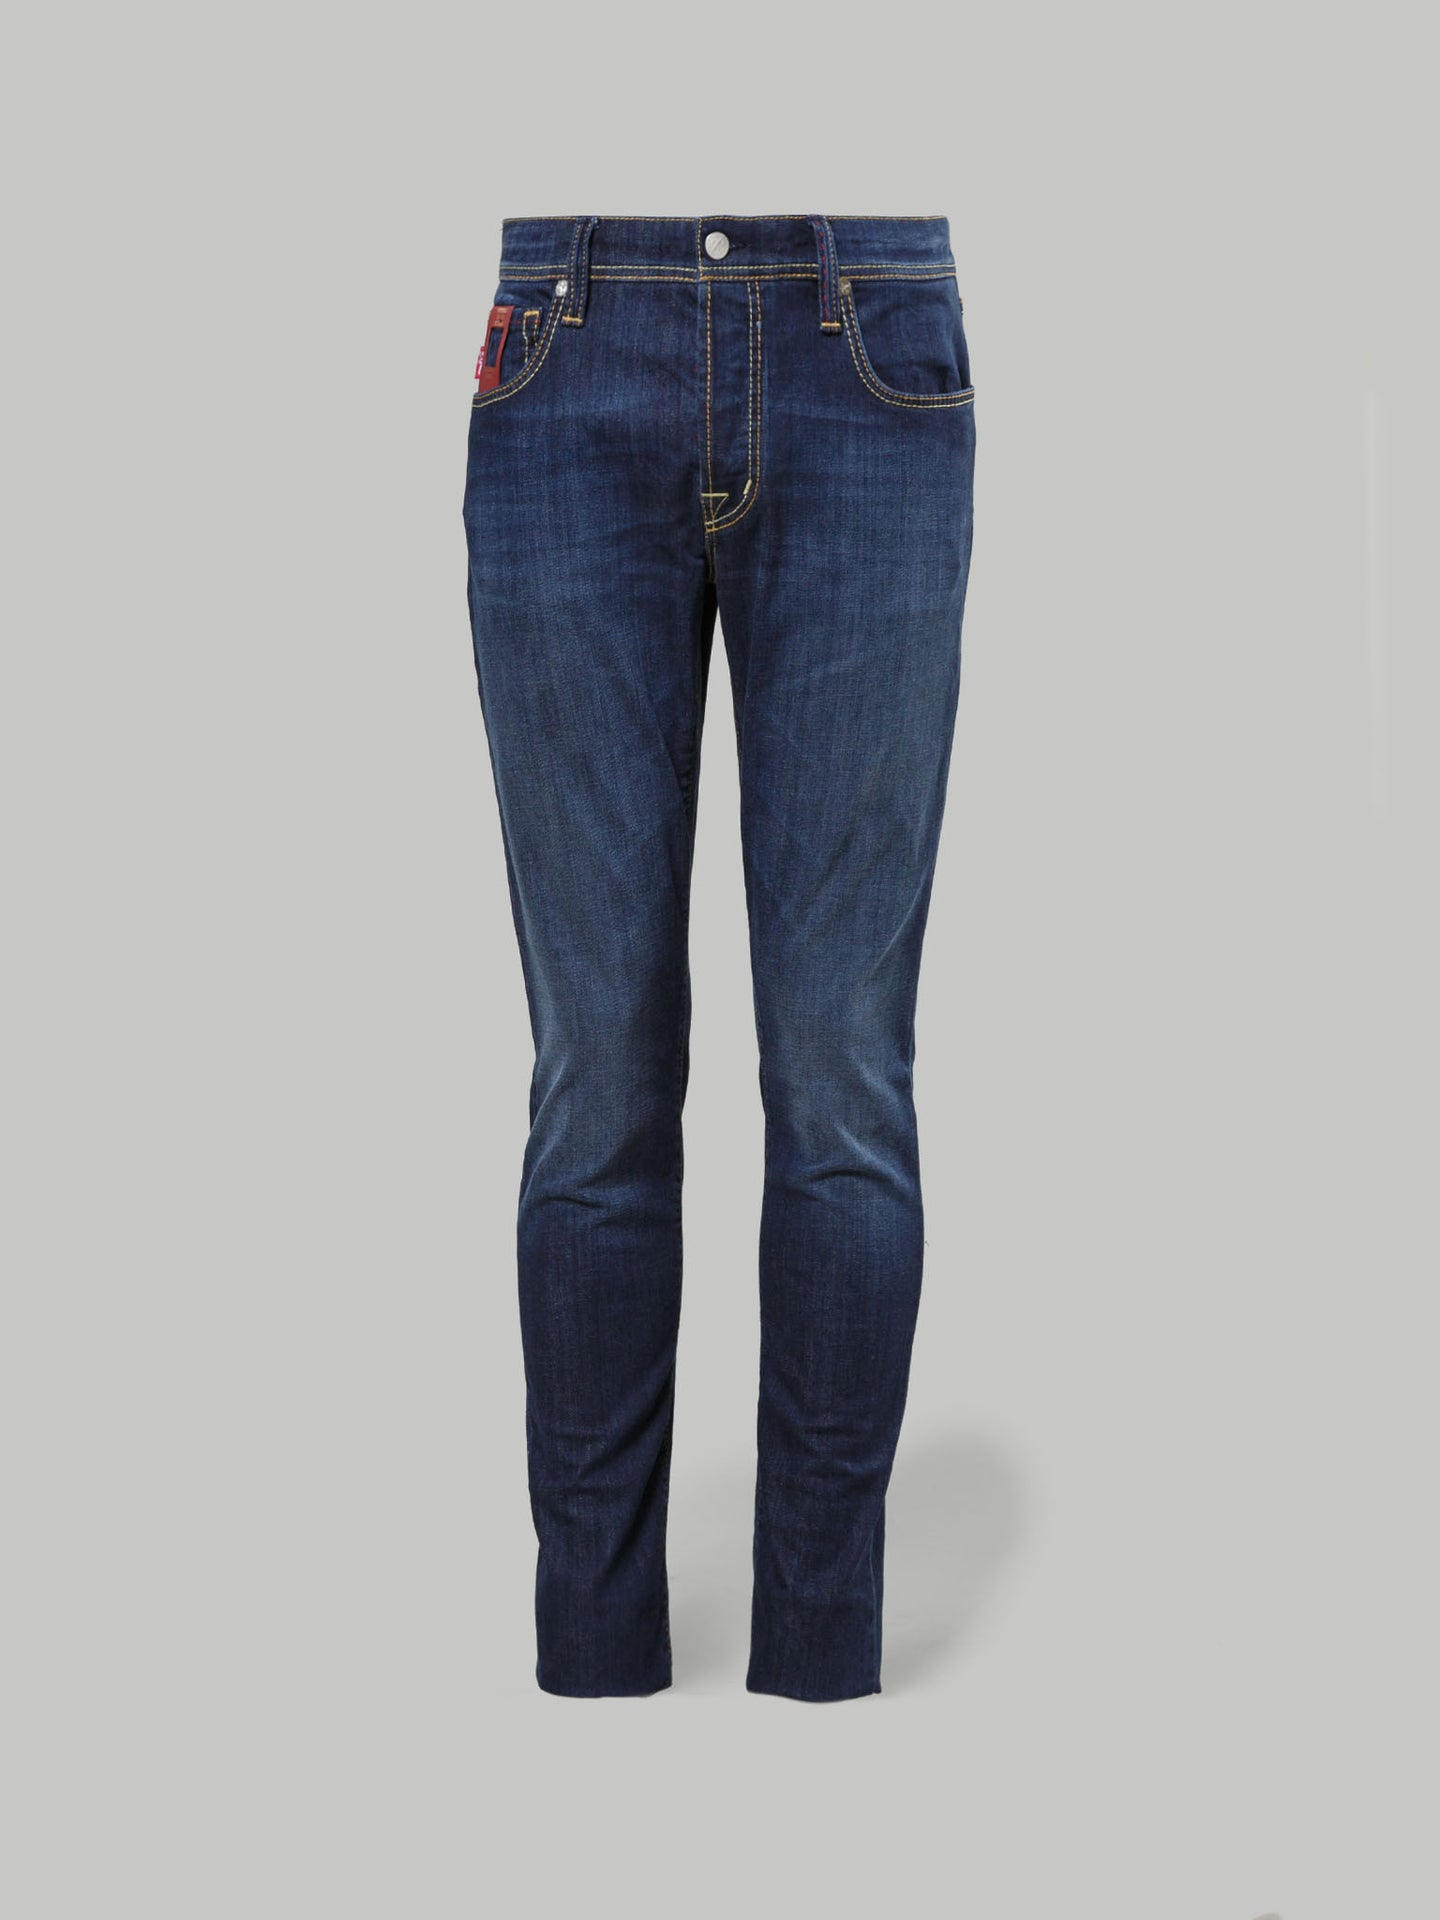 Tramarossa Leonardo Slim Fit 6 Month Jean (Blue)